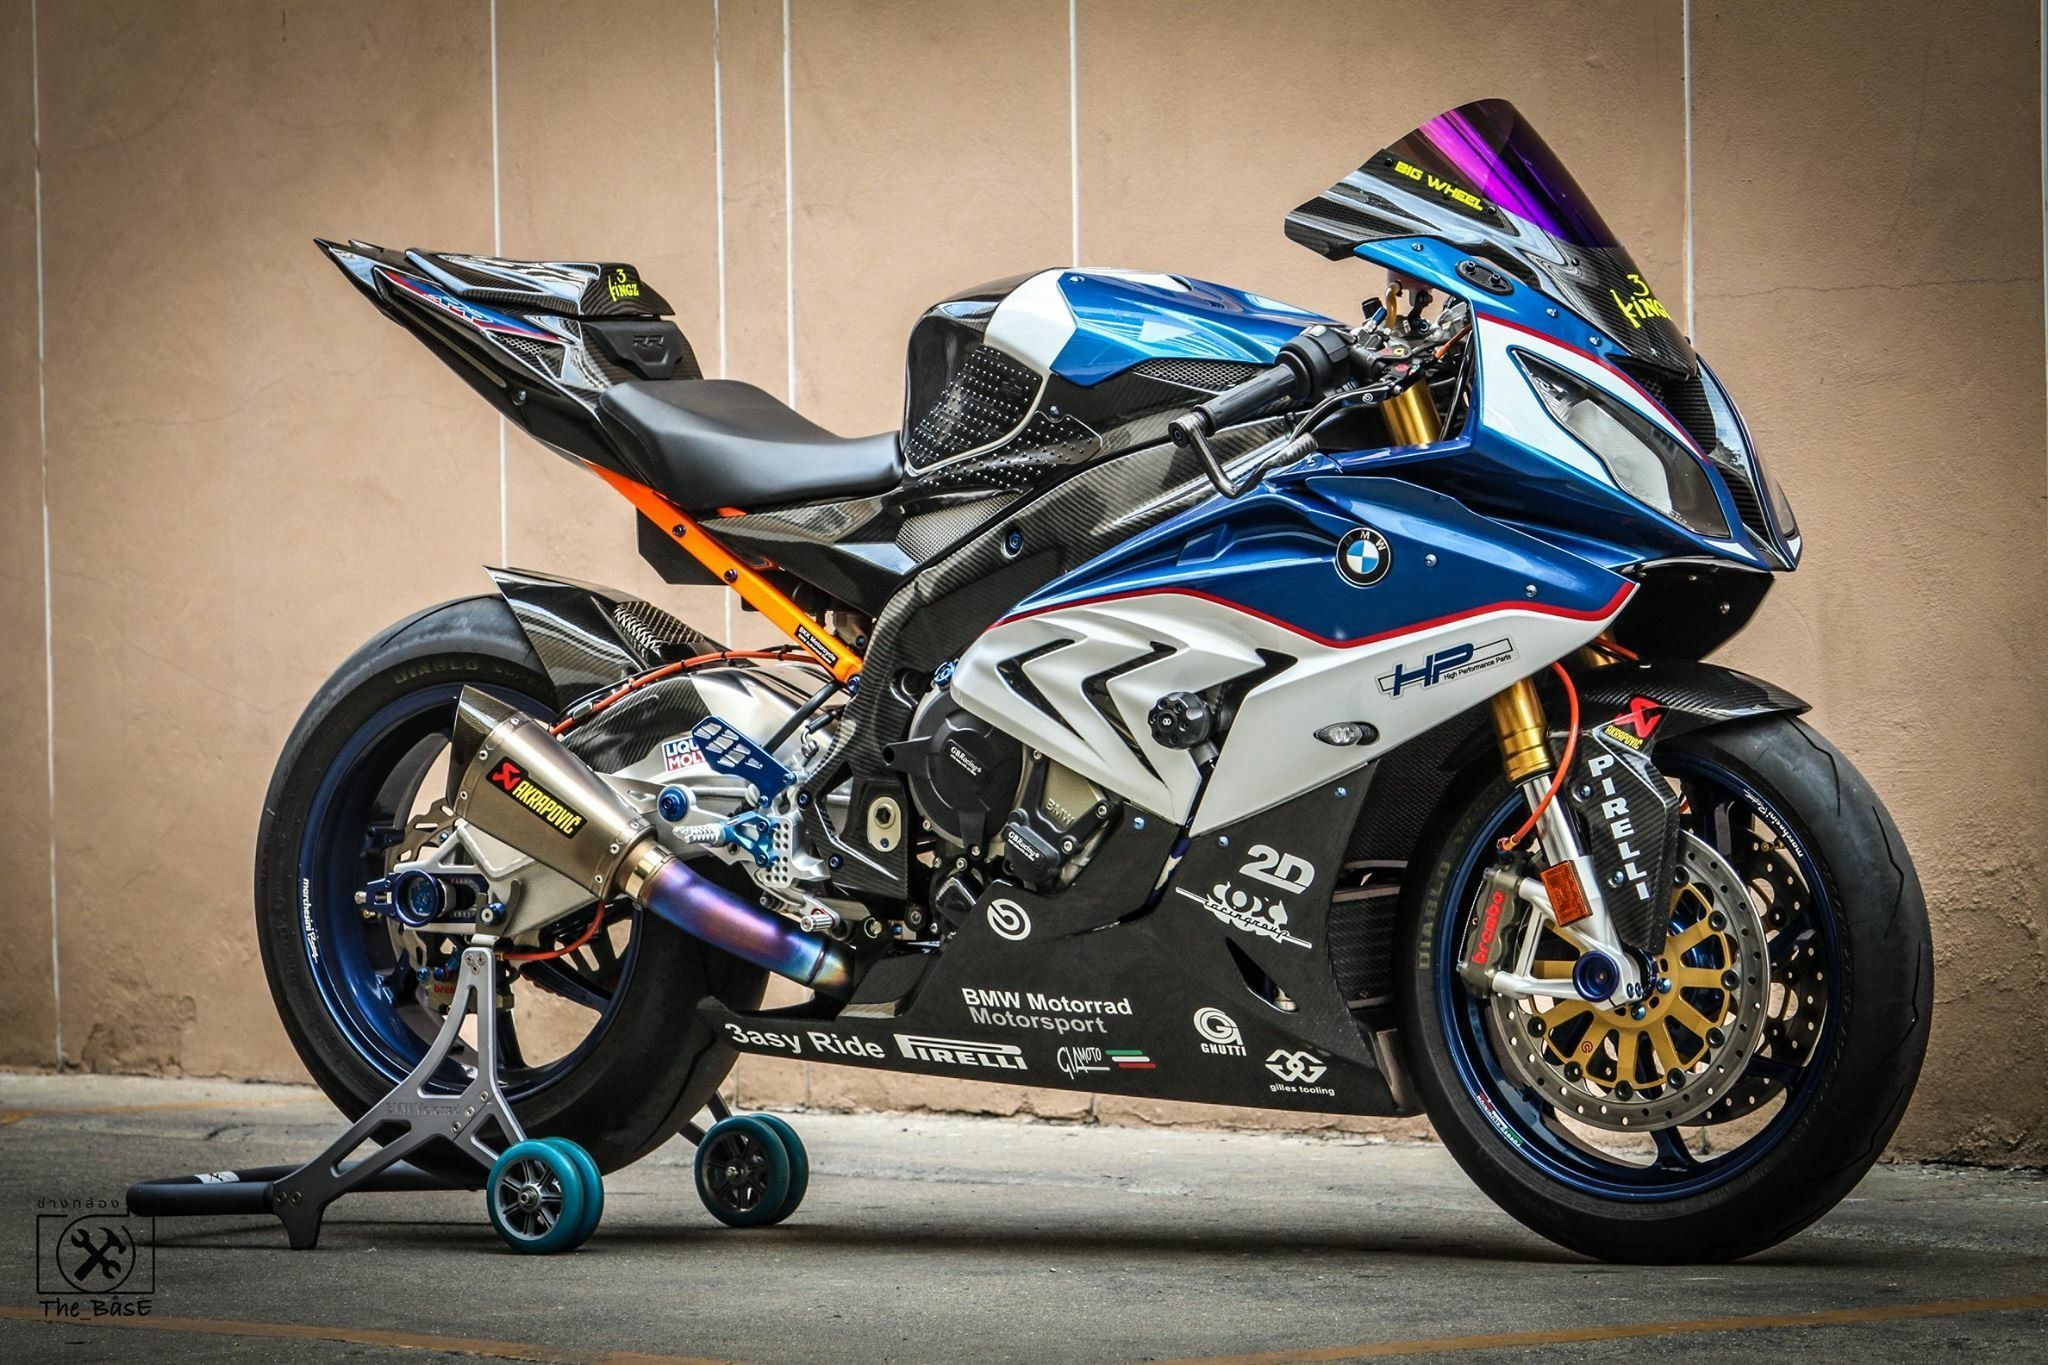 S1000rr In 2020 Bmw S1000rr Bmw Motorcycle S1000rr